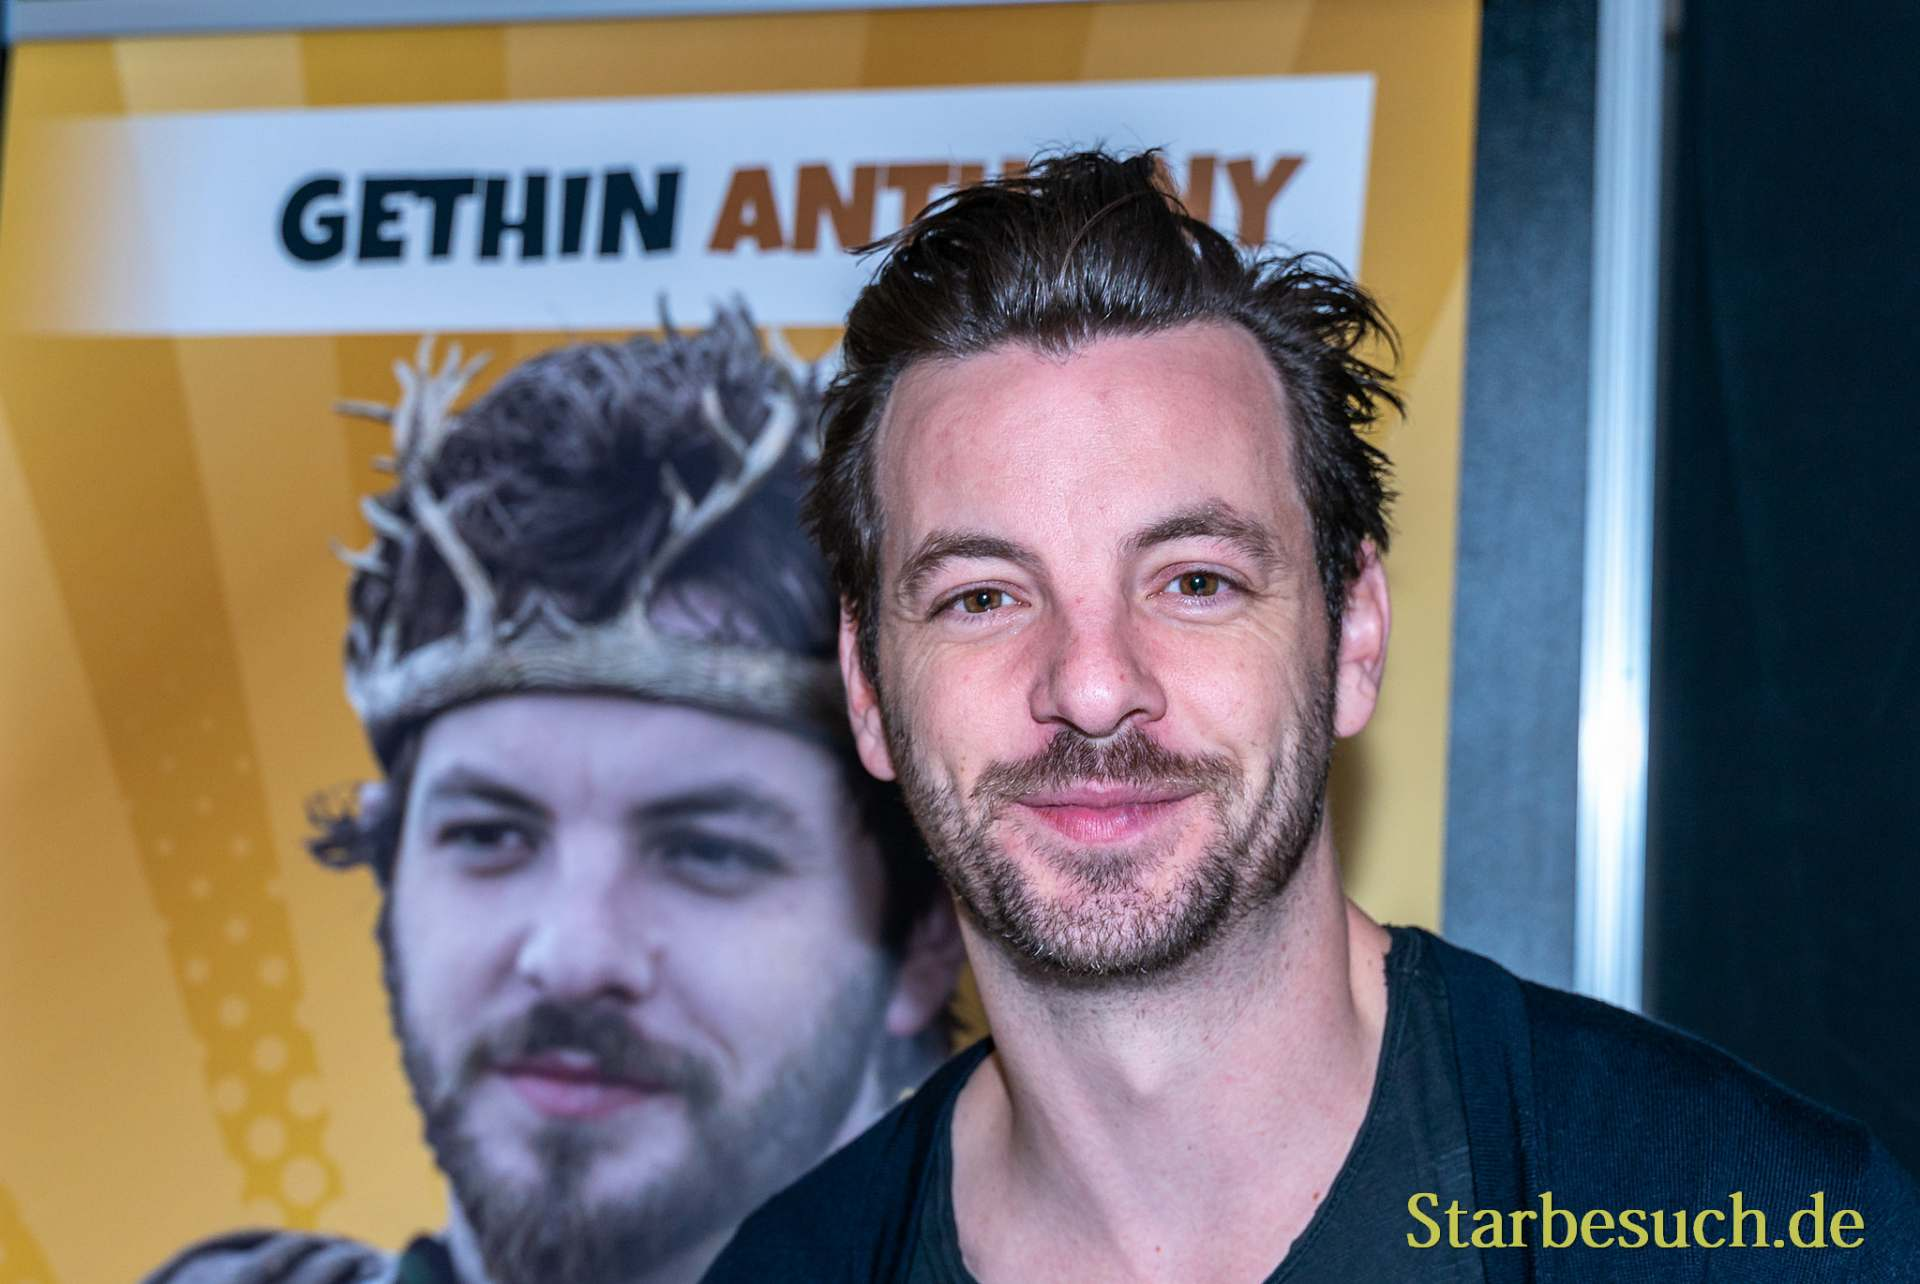 DORTMUND, GERMANY - December 8th 2019: Gethin Anthony at German Comic Con Dortmund